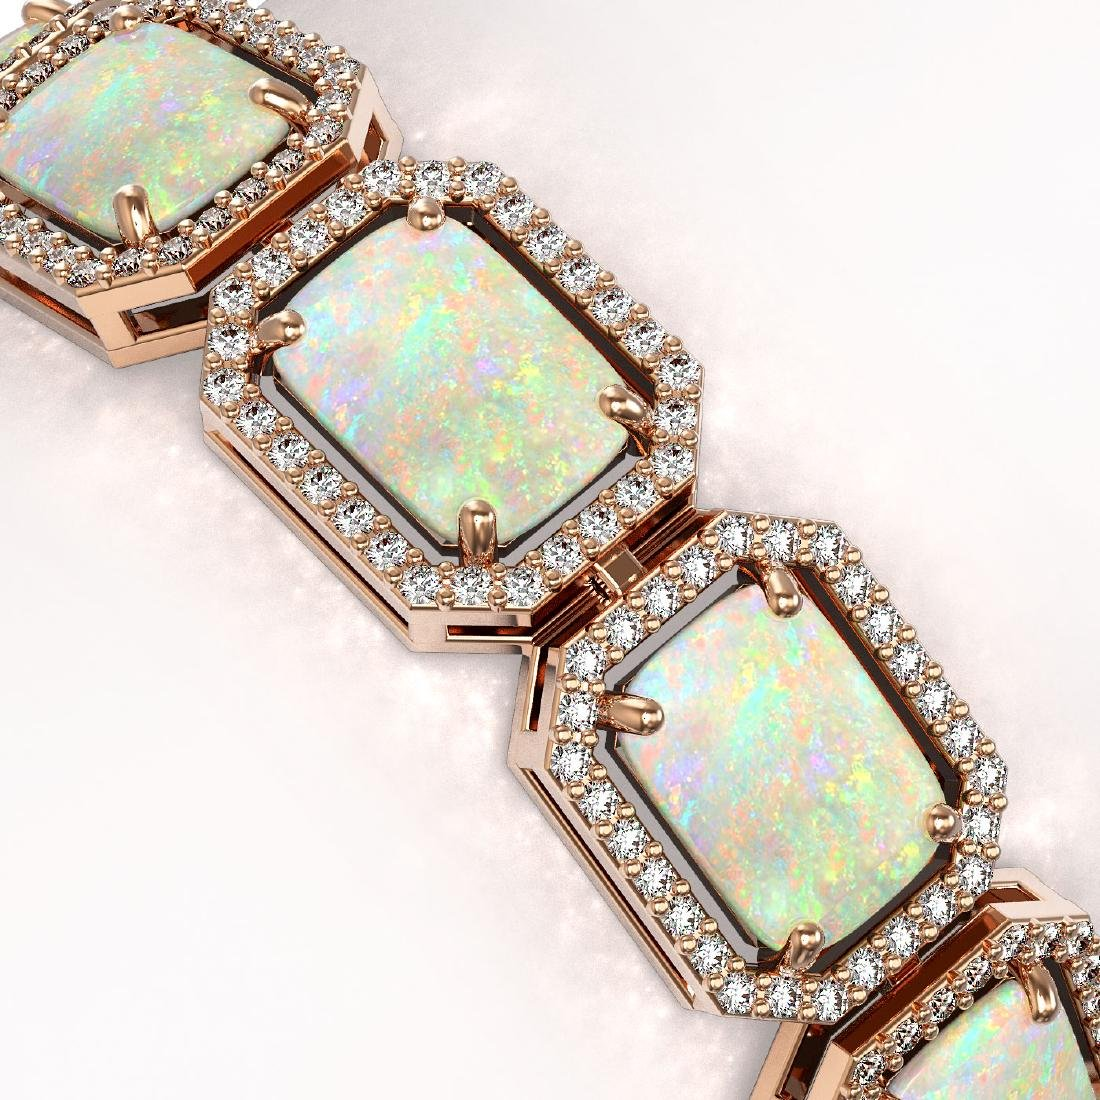 24.37 CTW Opal & Diamond Halo Bracelet 10K Rose Gold - 2